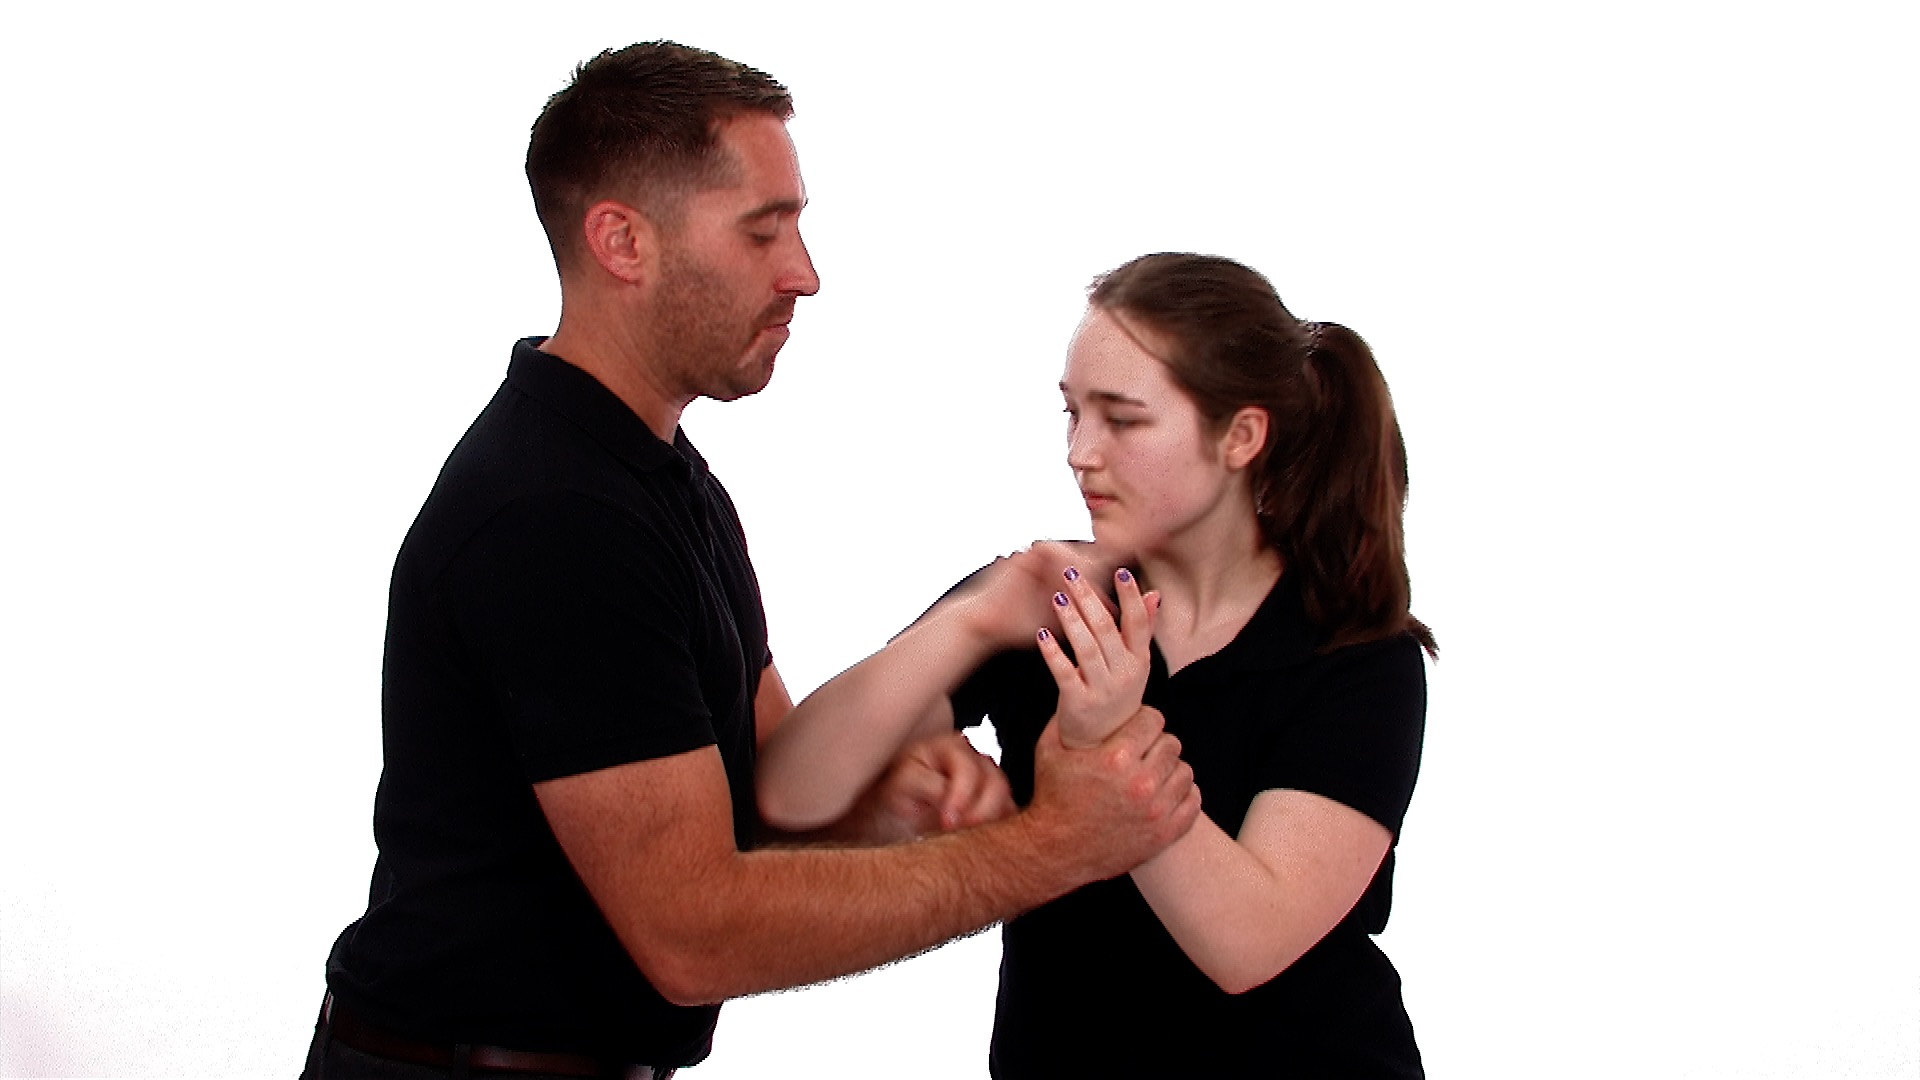 women's self defence using the elbow